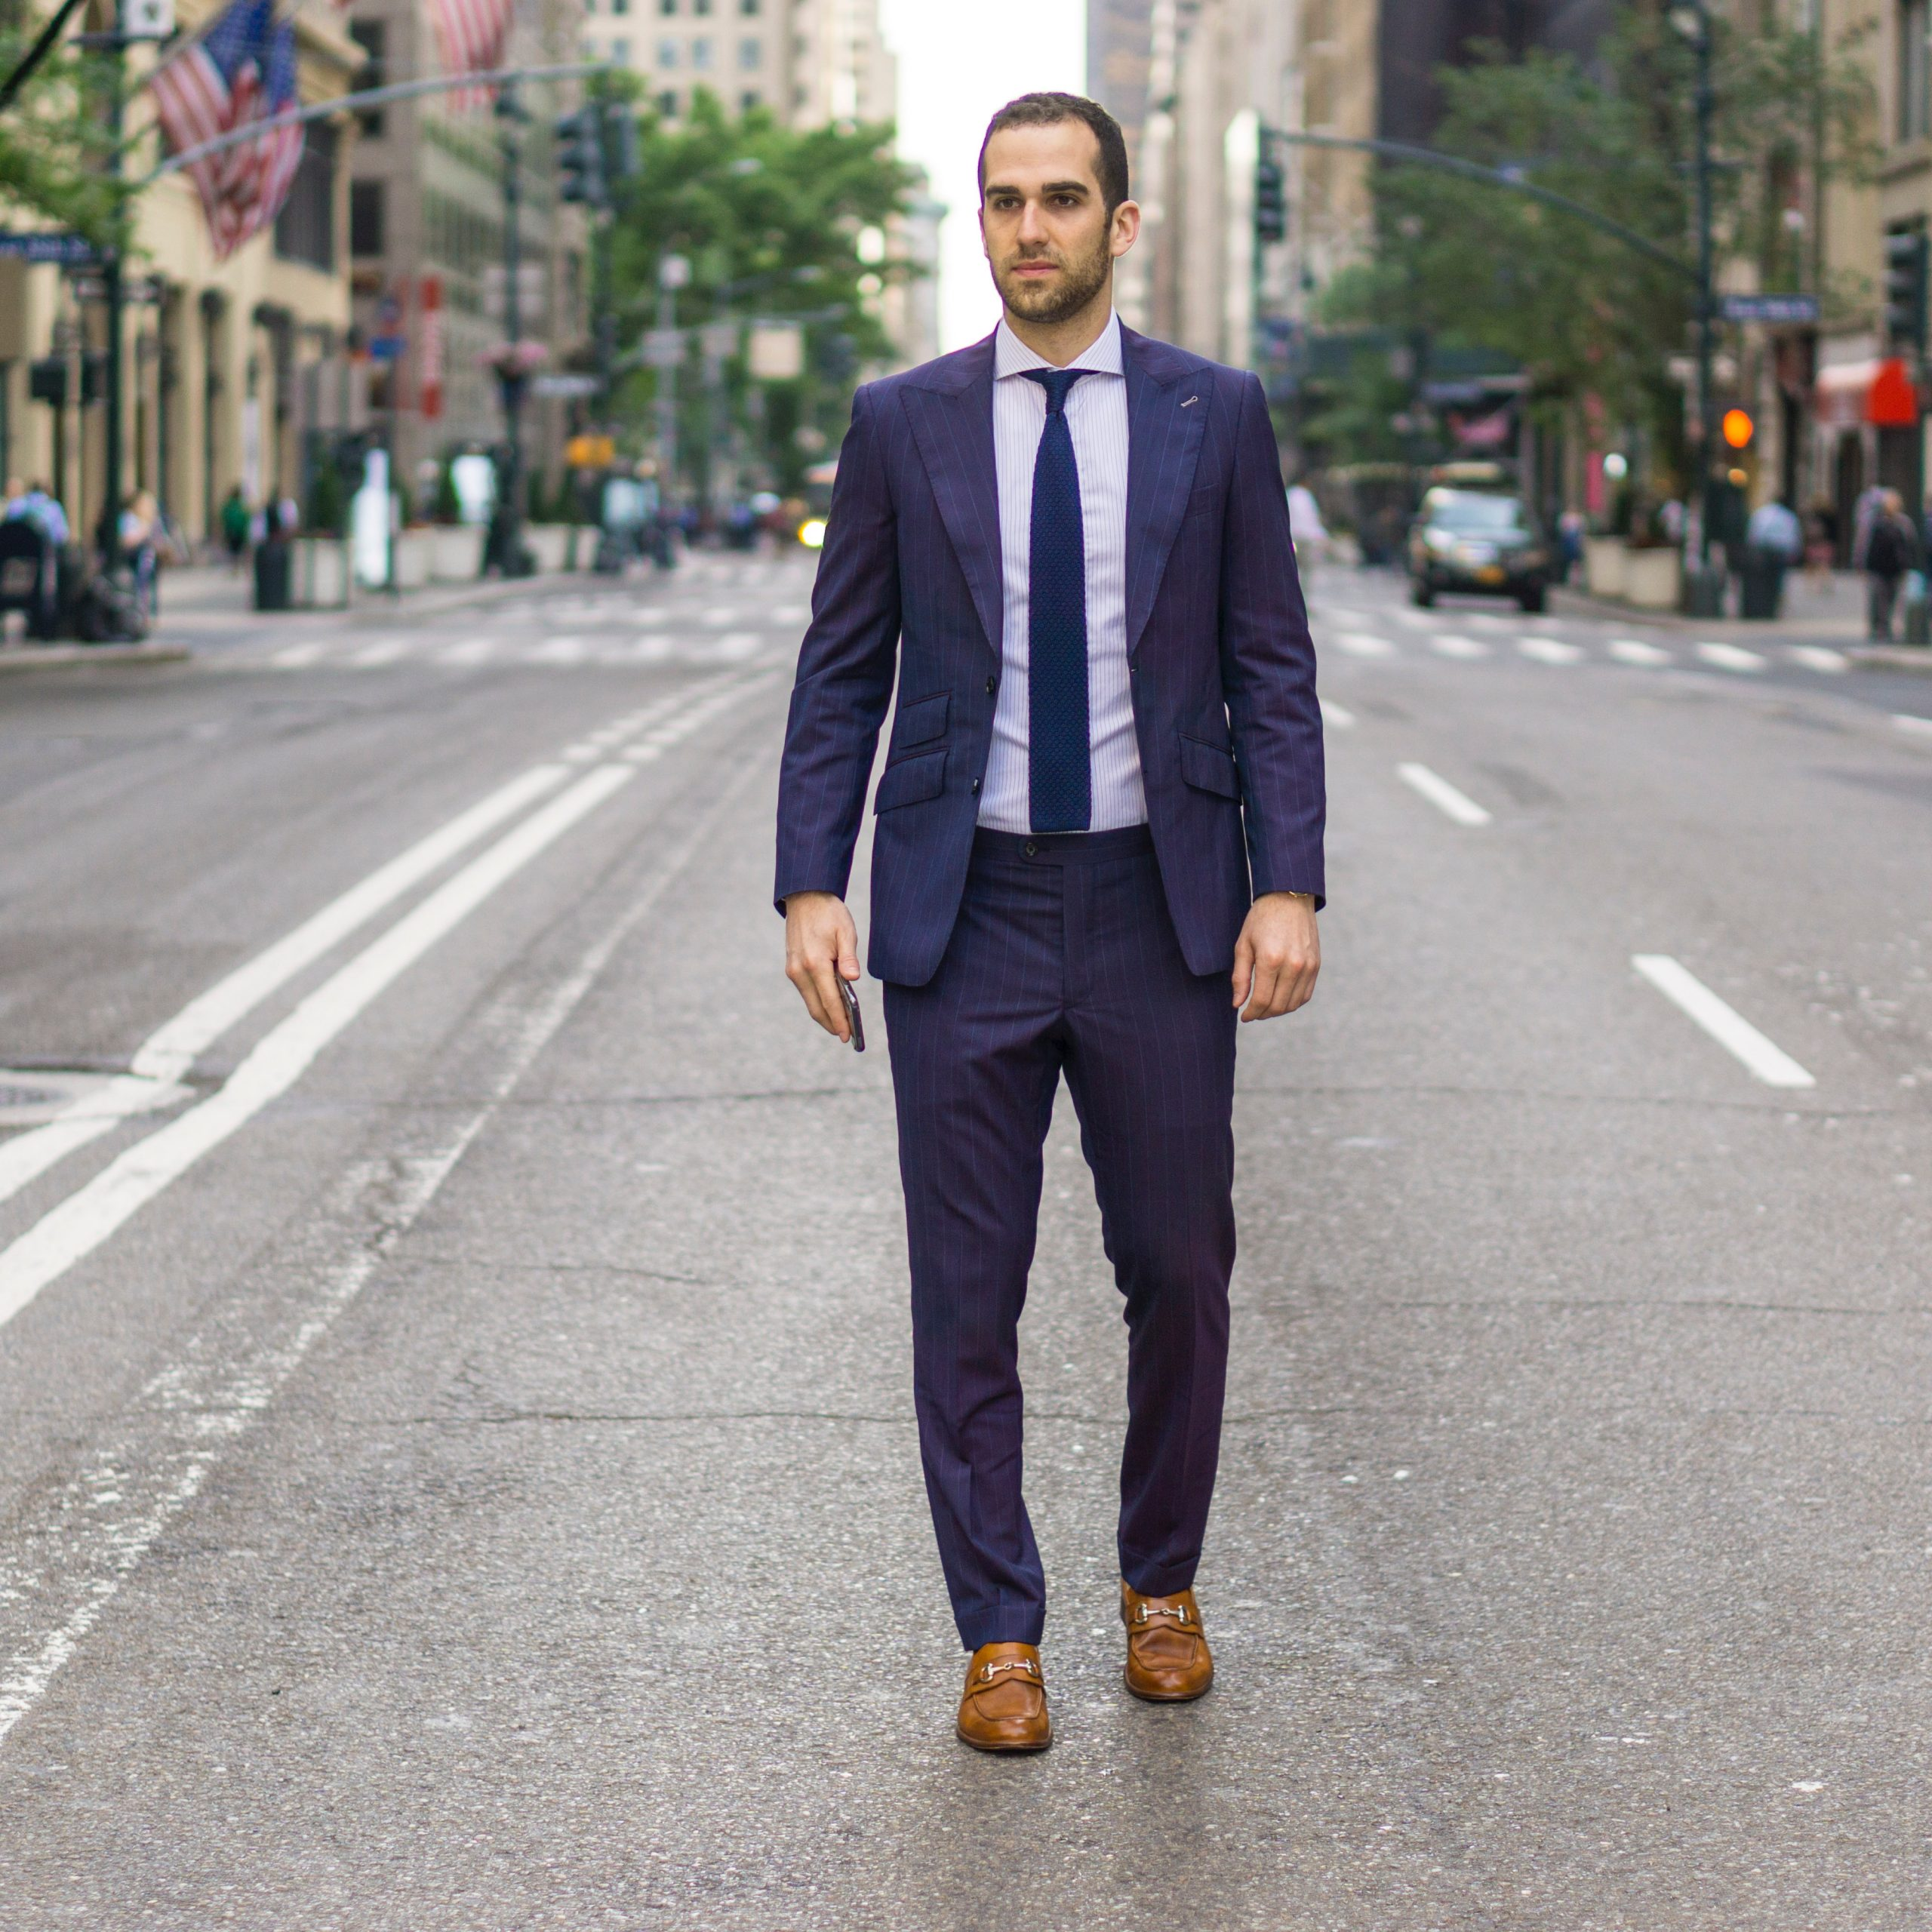 man in black suit standing on road during daytime